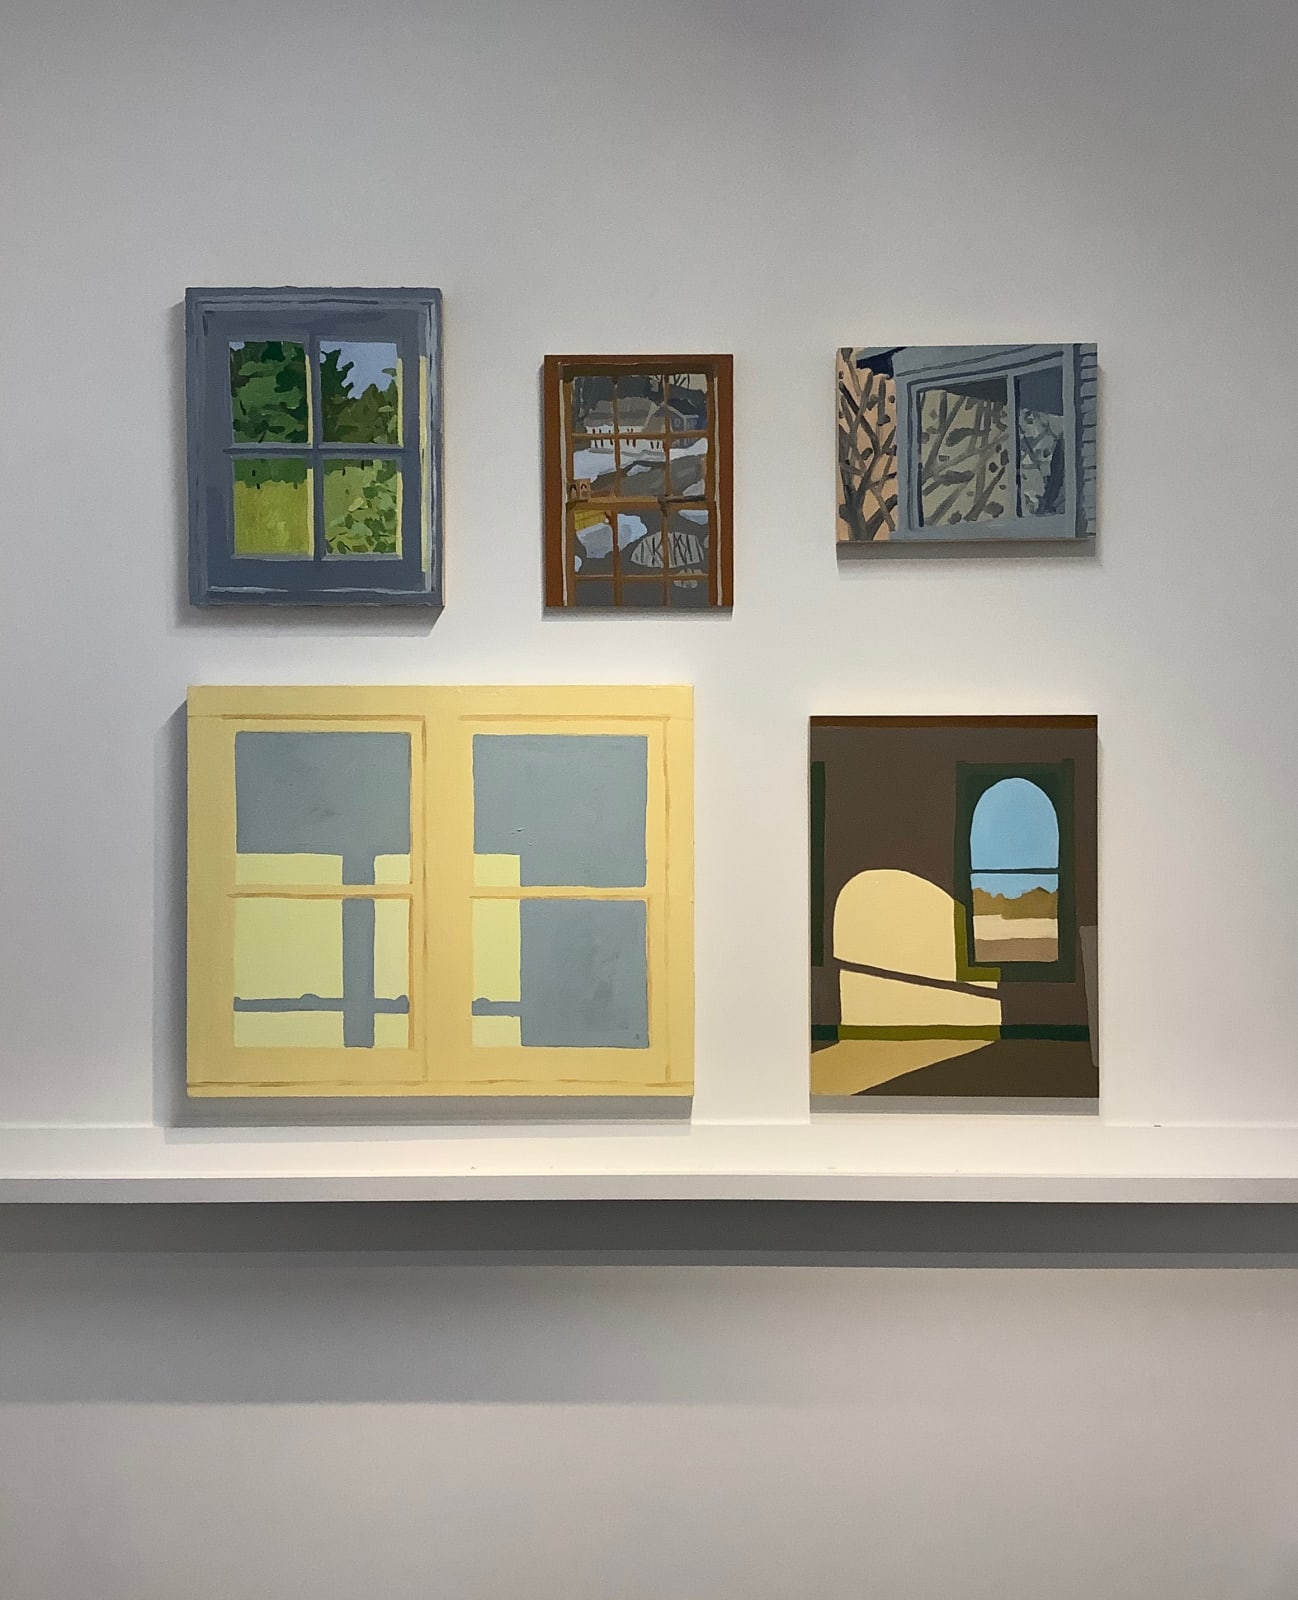 A Year in Windows - Sophie Treppendahl